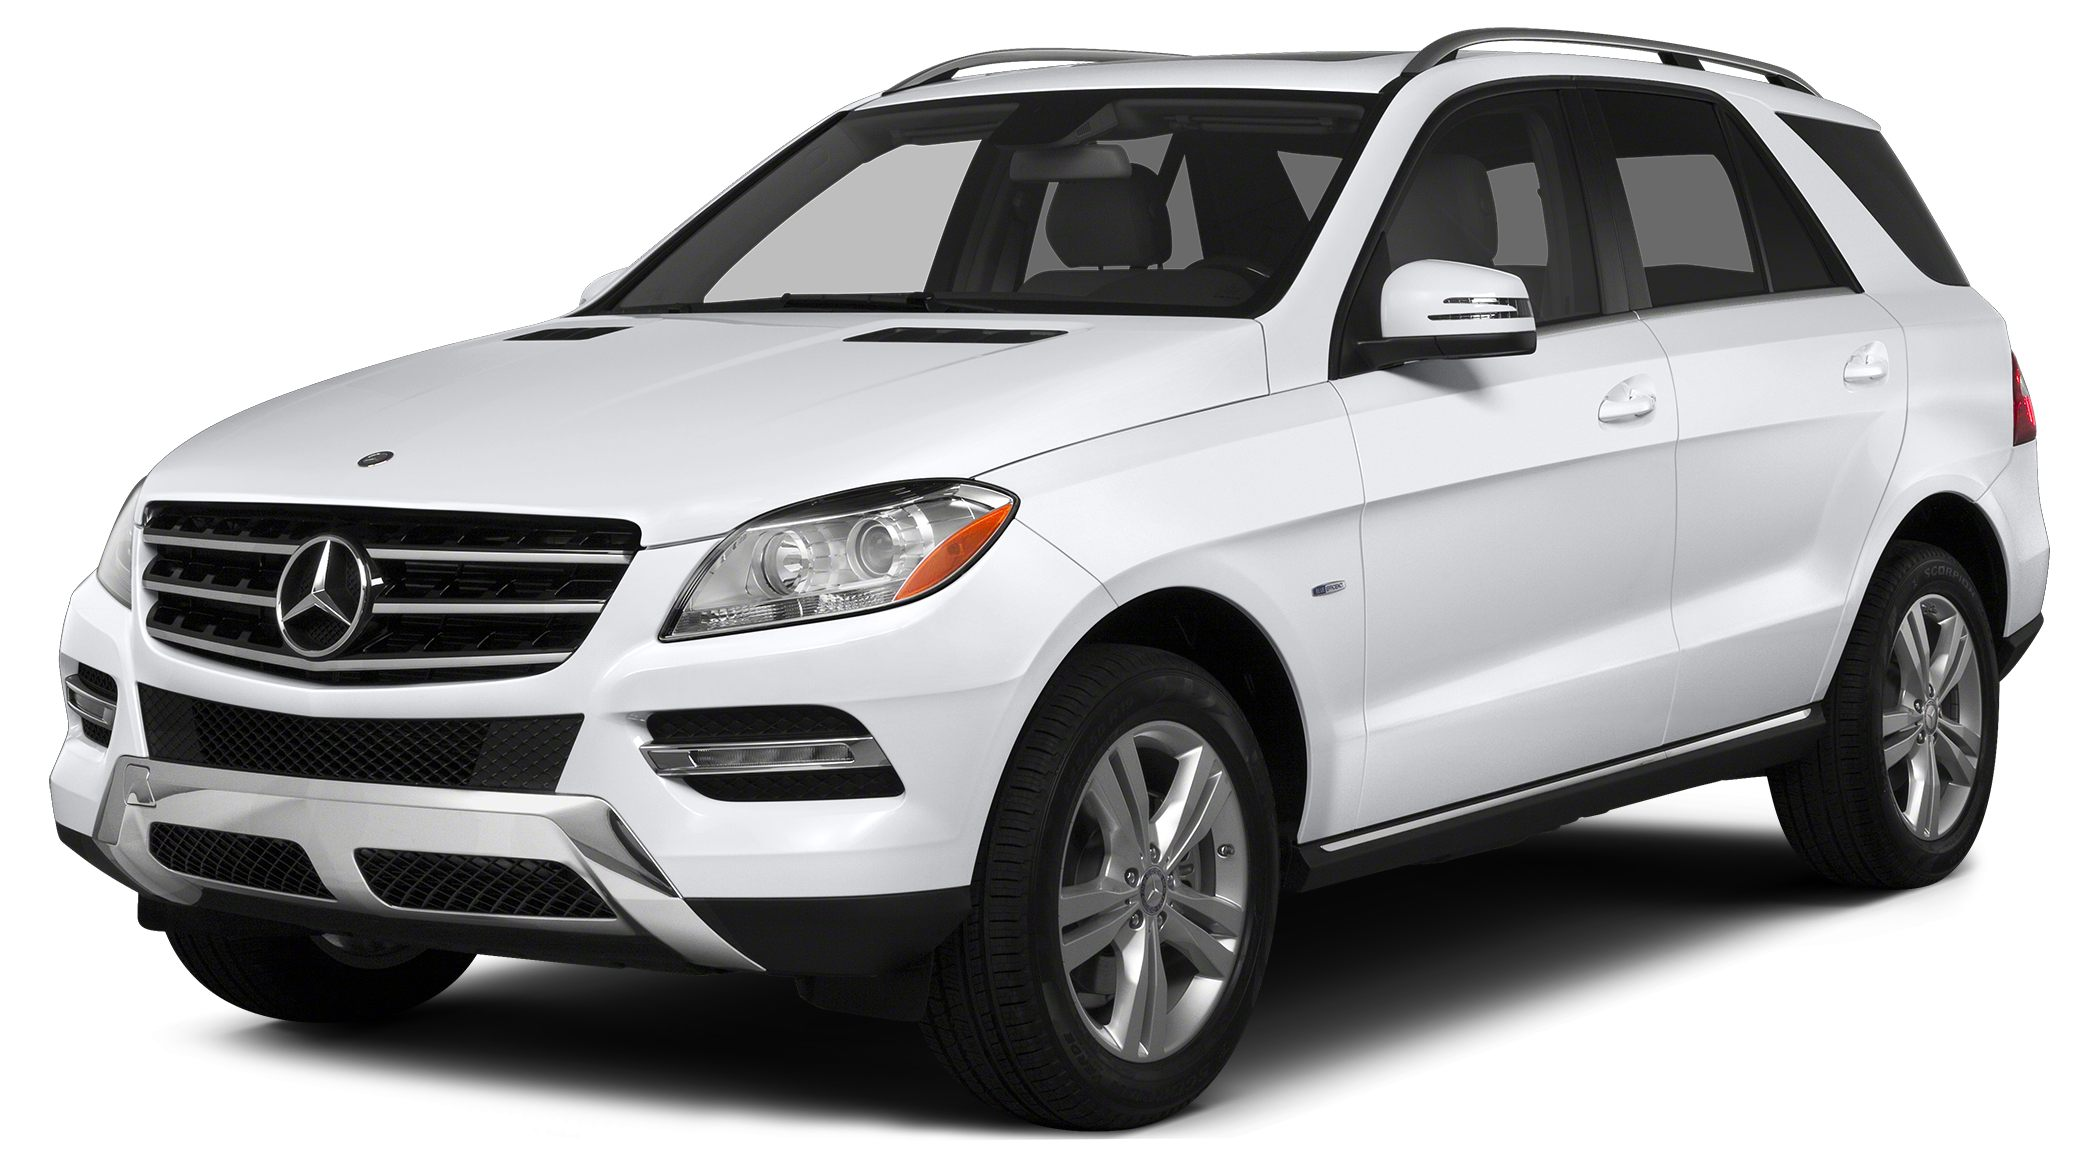 2015 MERCEDES M-Class ML350 This 2015 ML350 is a low mileage MBUSA employee lease unit now up for